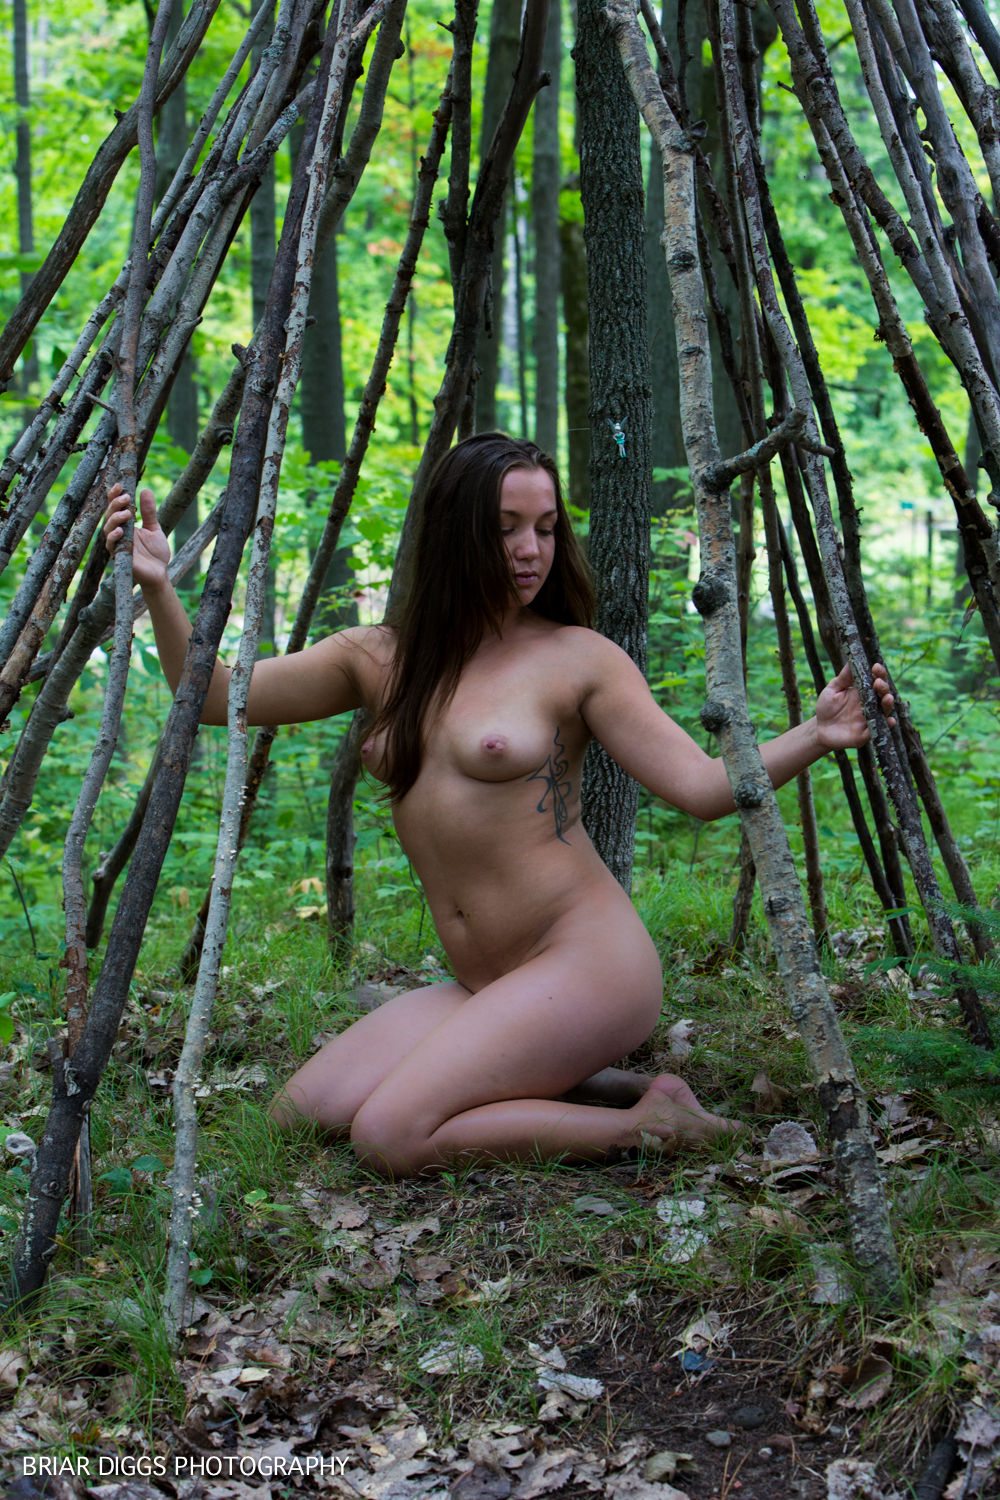 MODELS ART NUDES (COLOR)-58.jpg